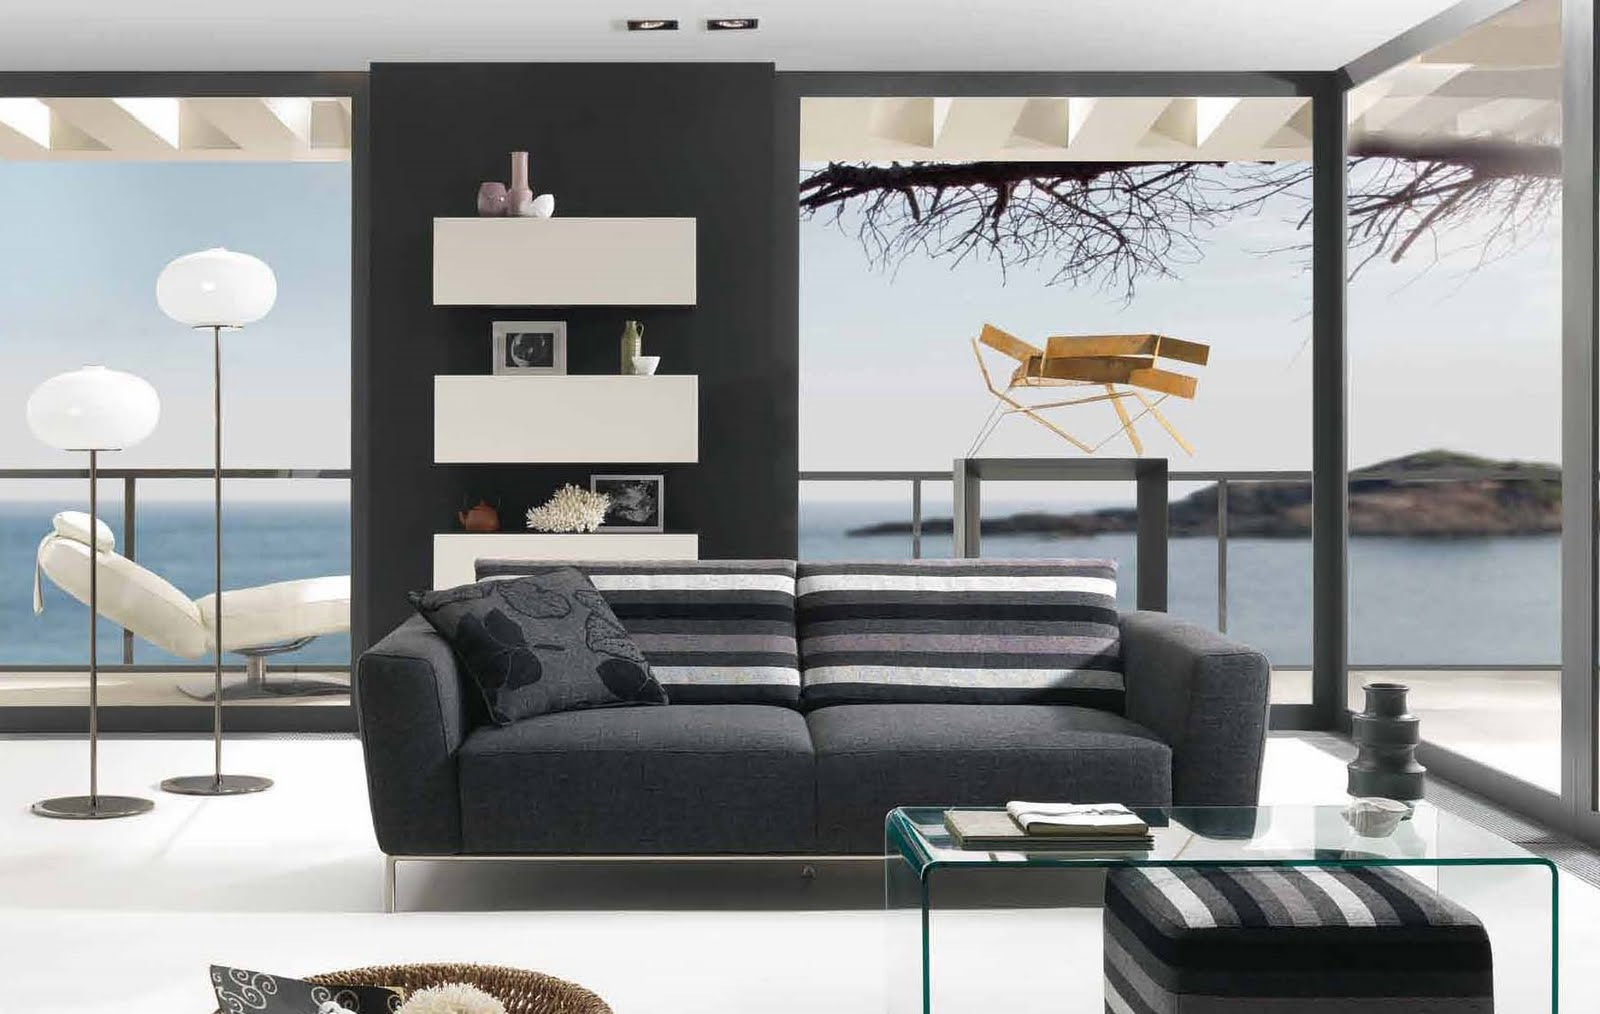 Future house design modern living room interior design - Modern wall decor for living room ...